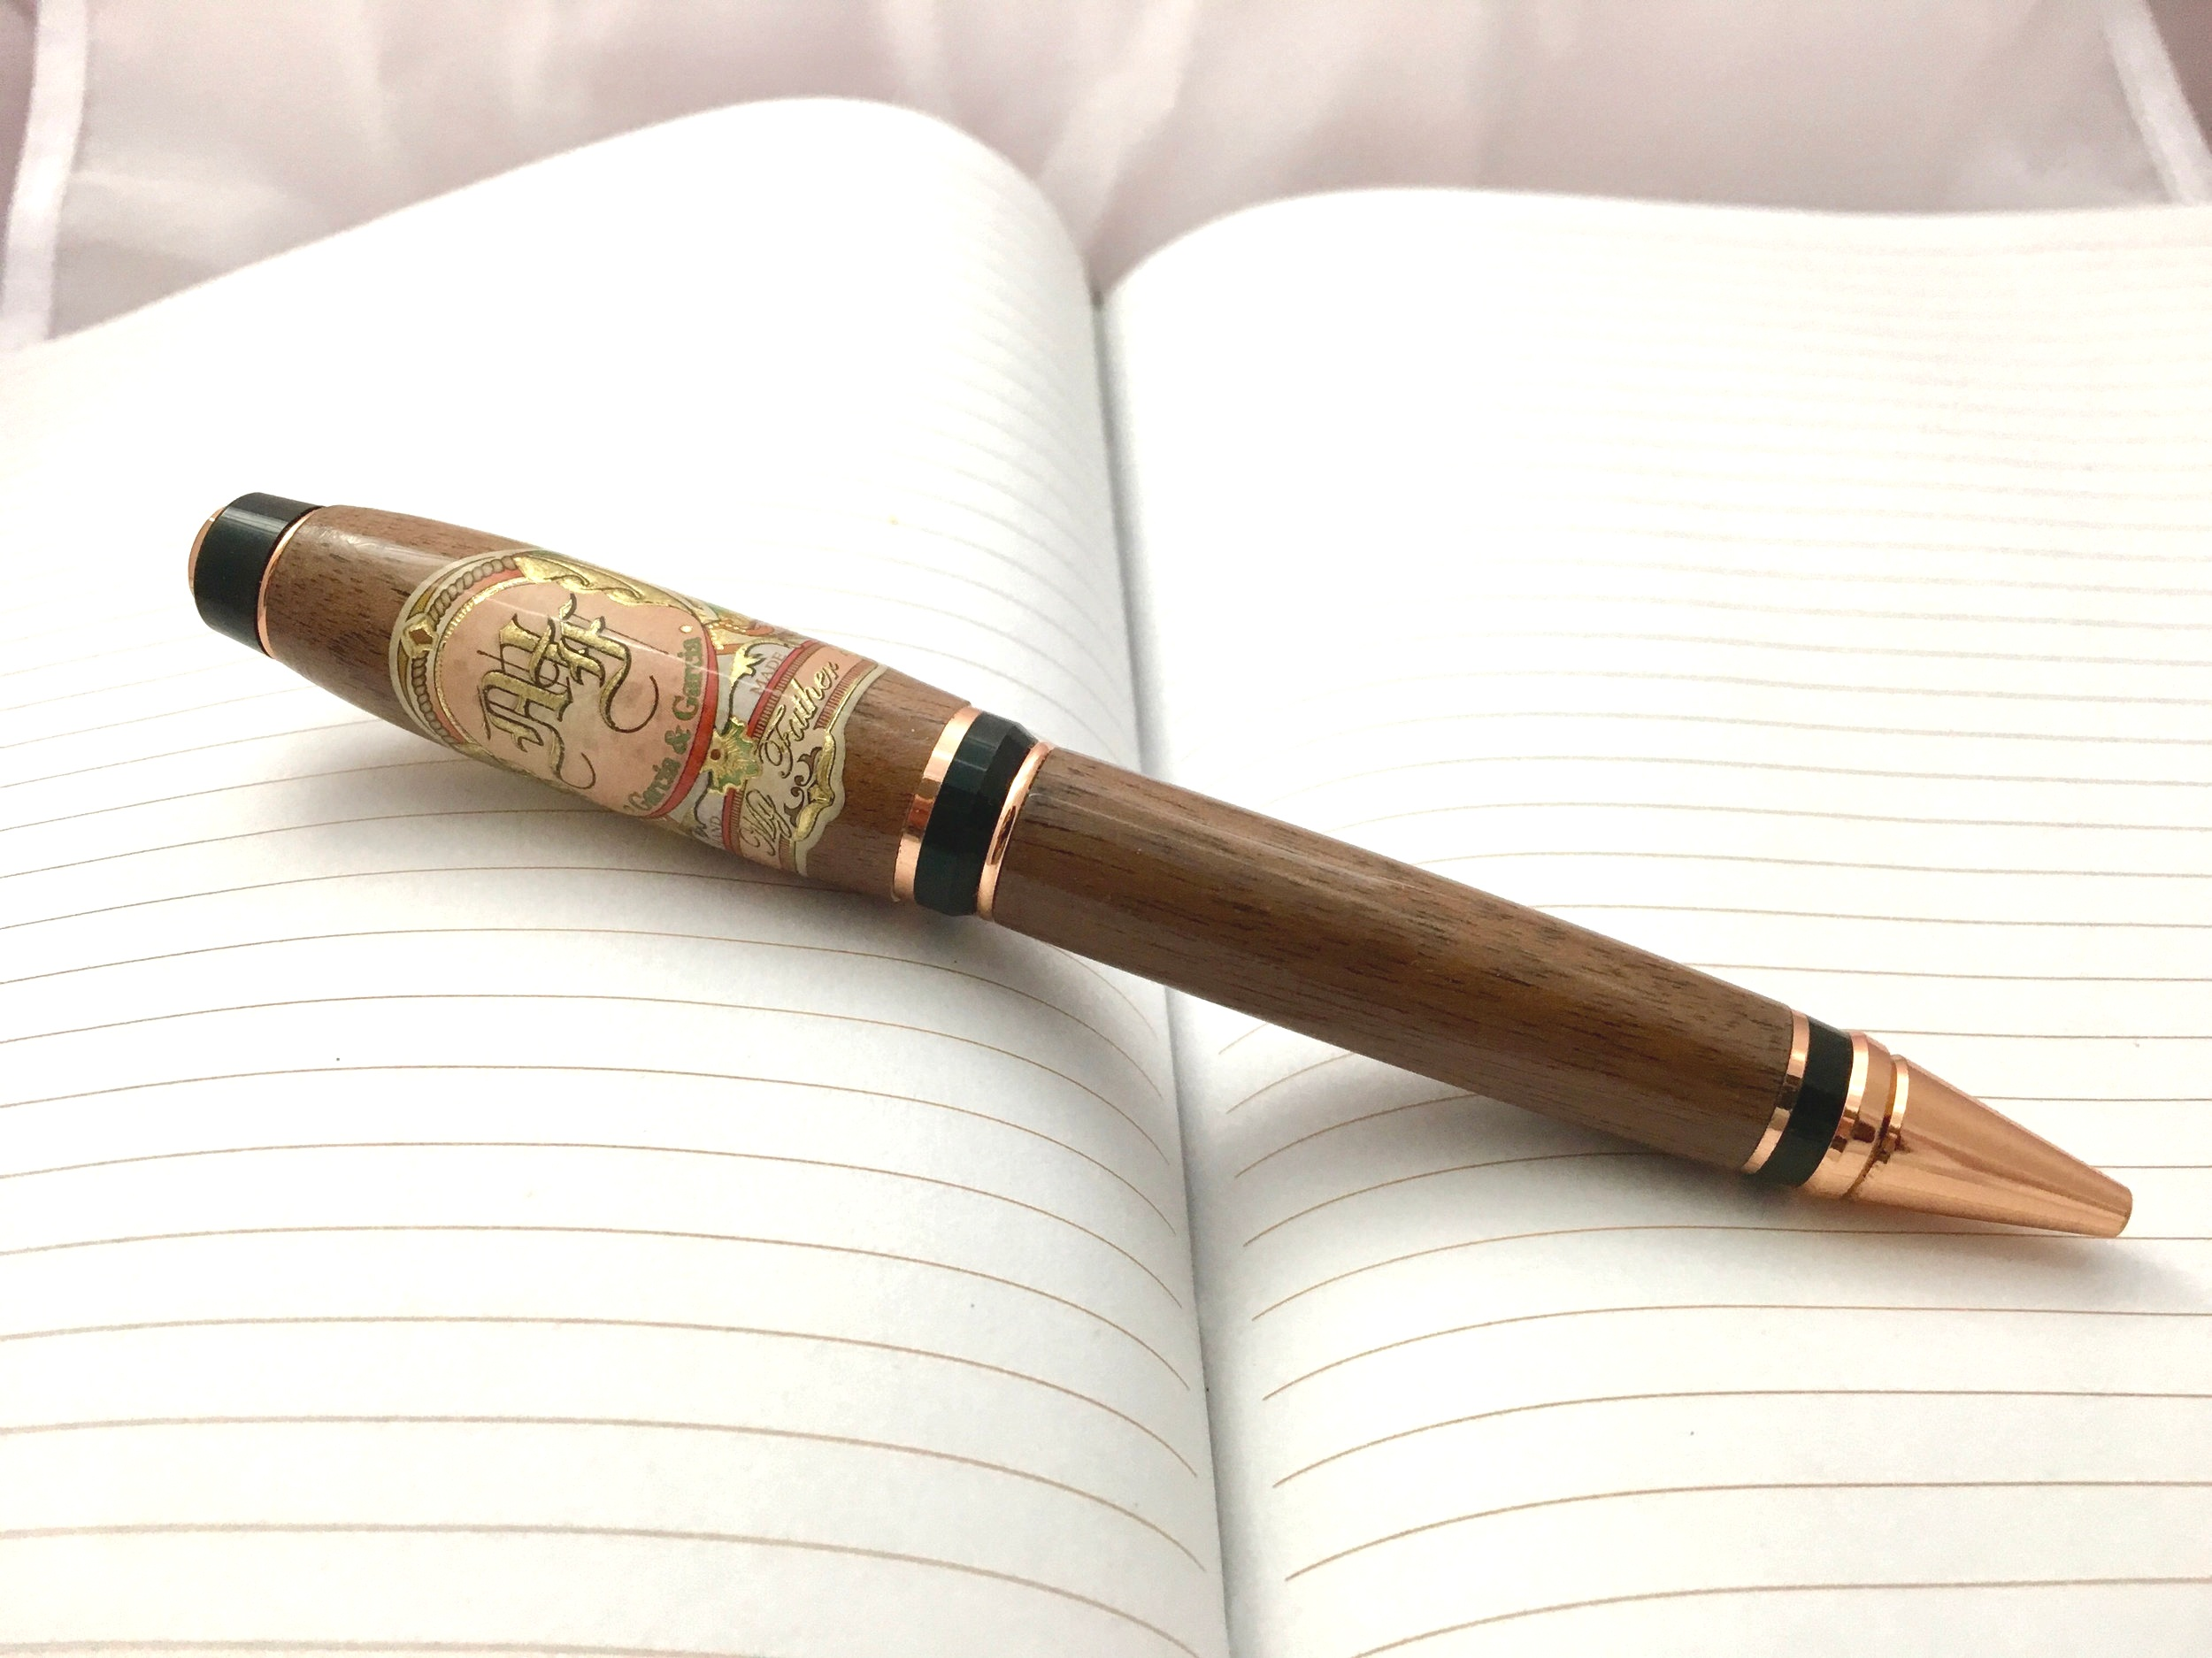 Pen Savvy - It's good to know what you're buying. Don't expect to learn any deep secrets about pen making, but here are few article about terms that you'll see on this and other websites devoted to the art of fine pens.